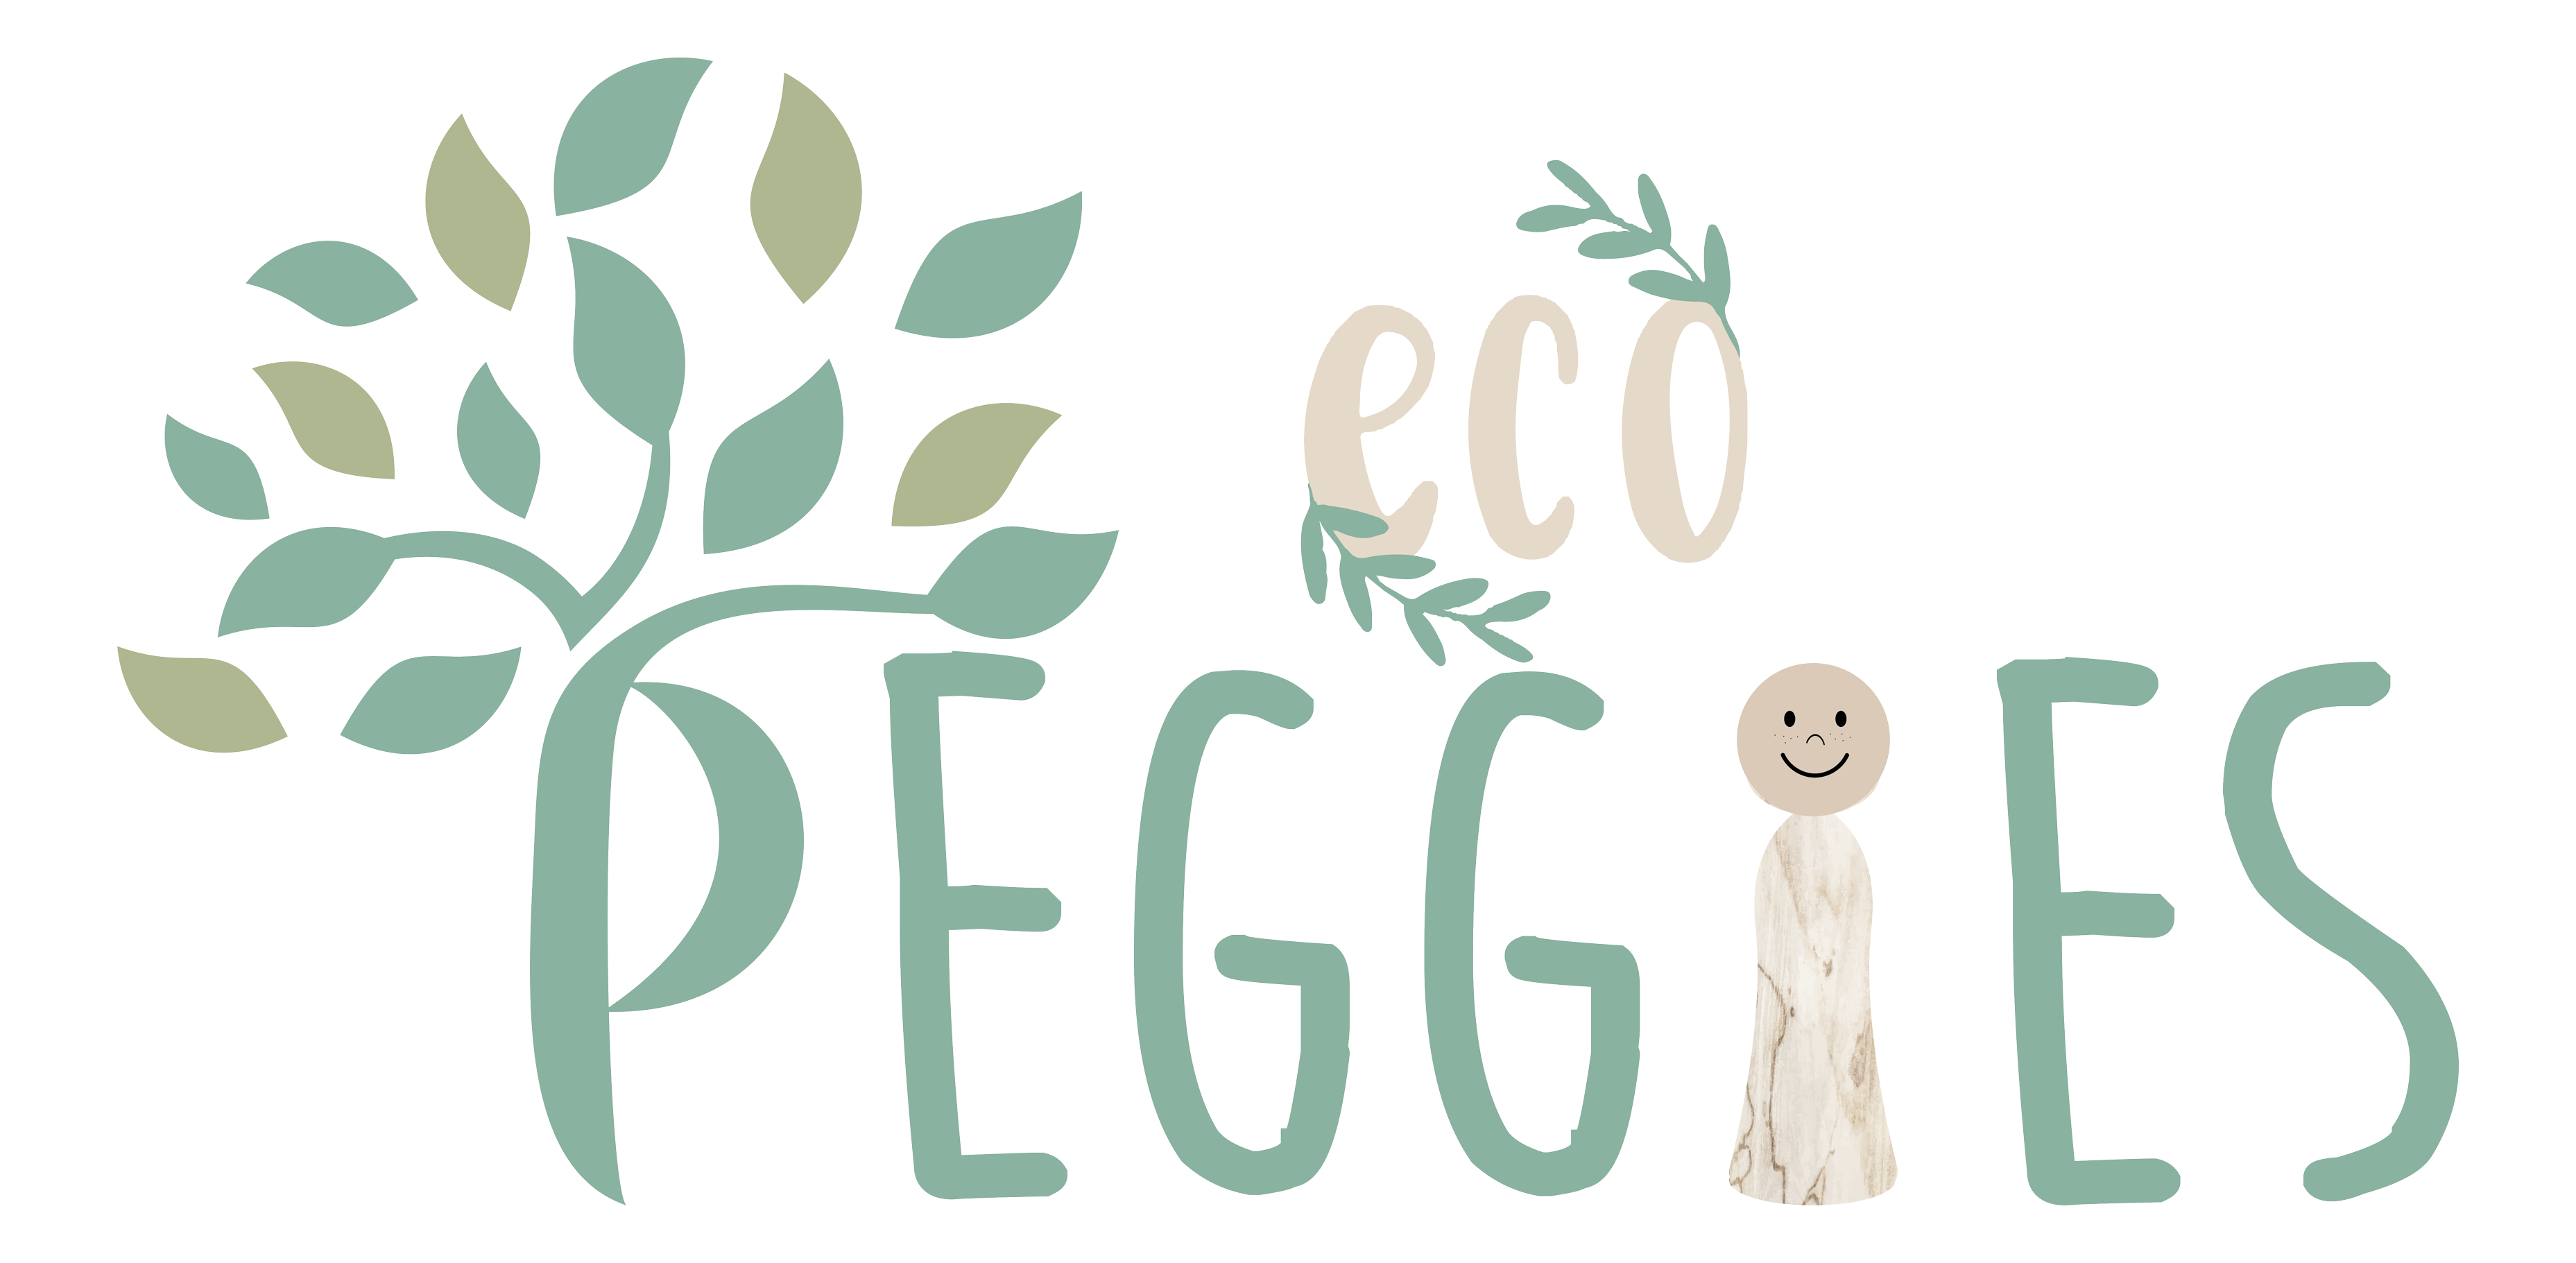 Eco Peggies